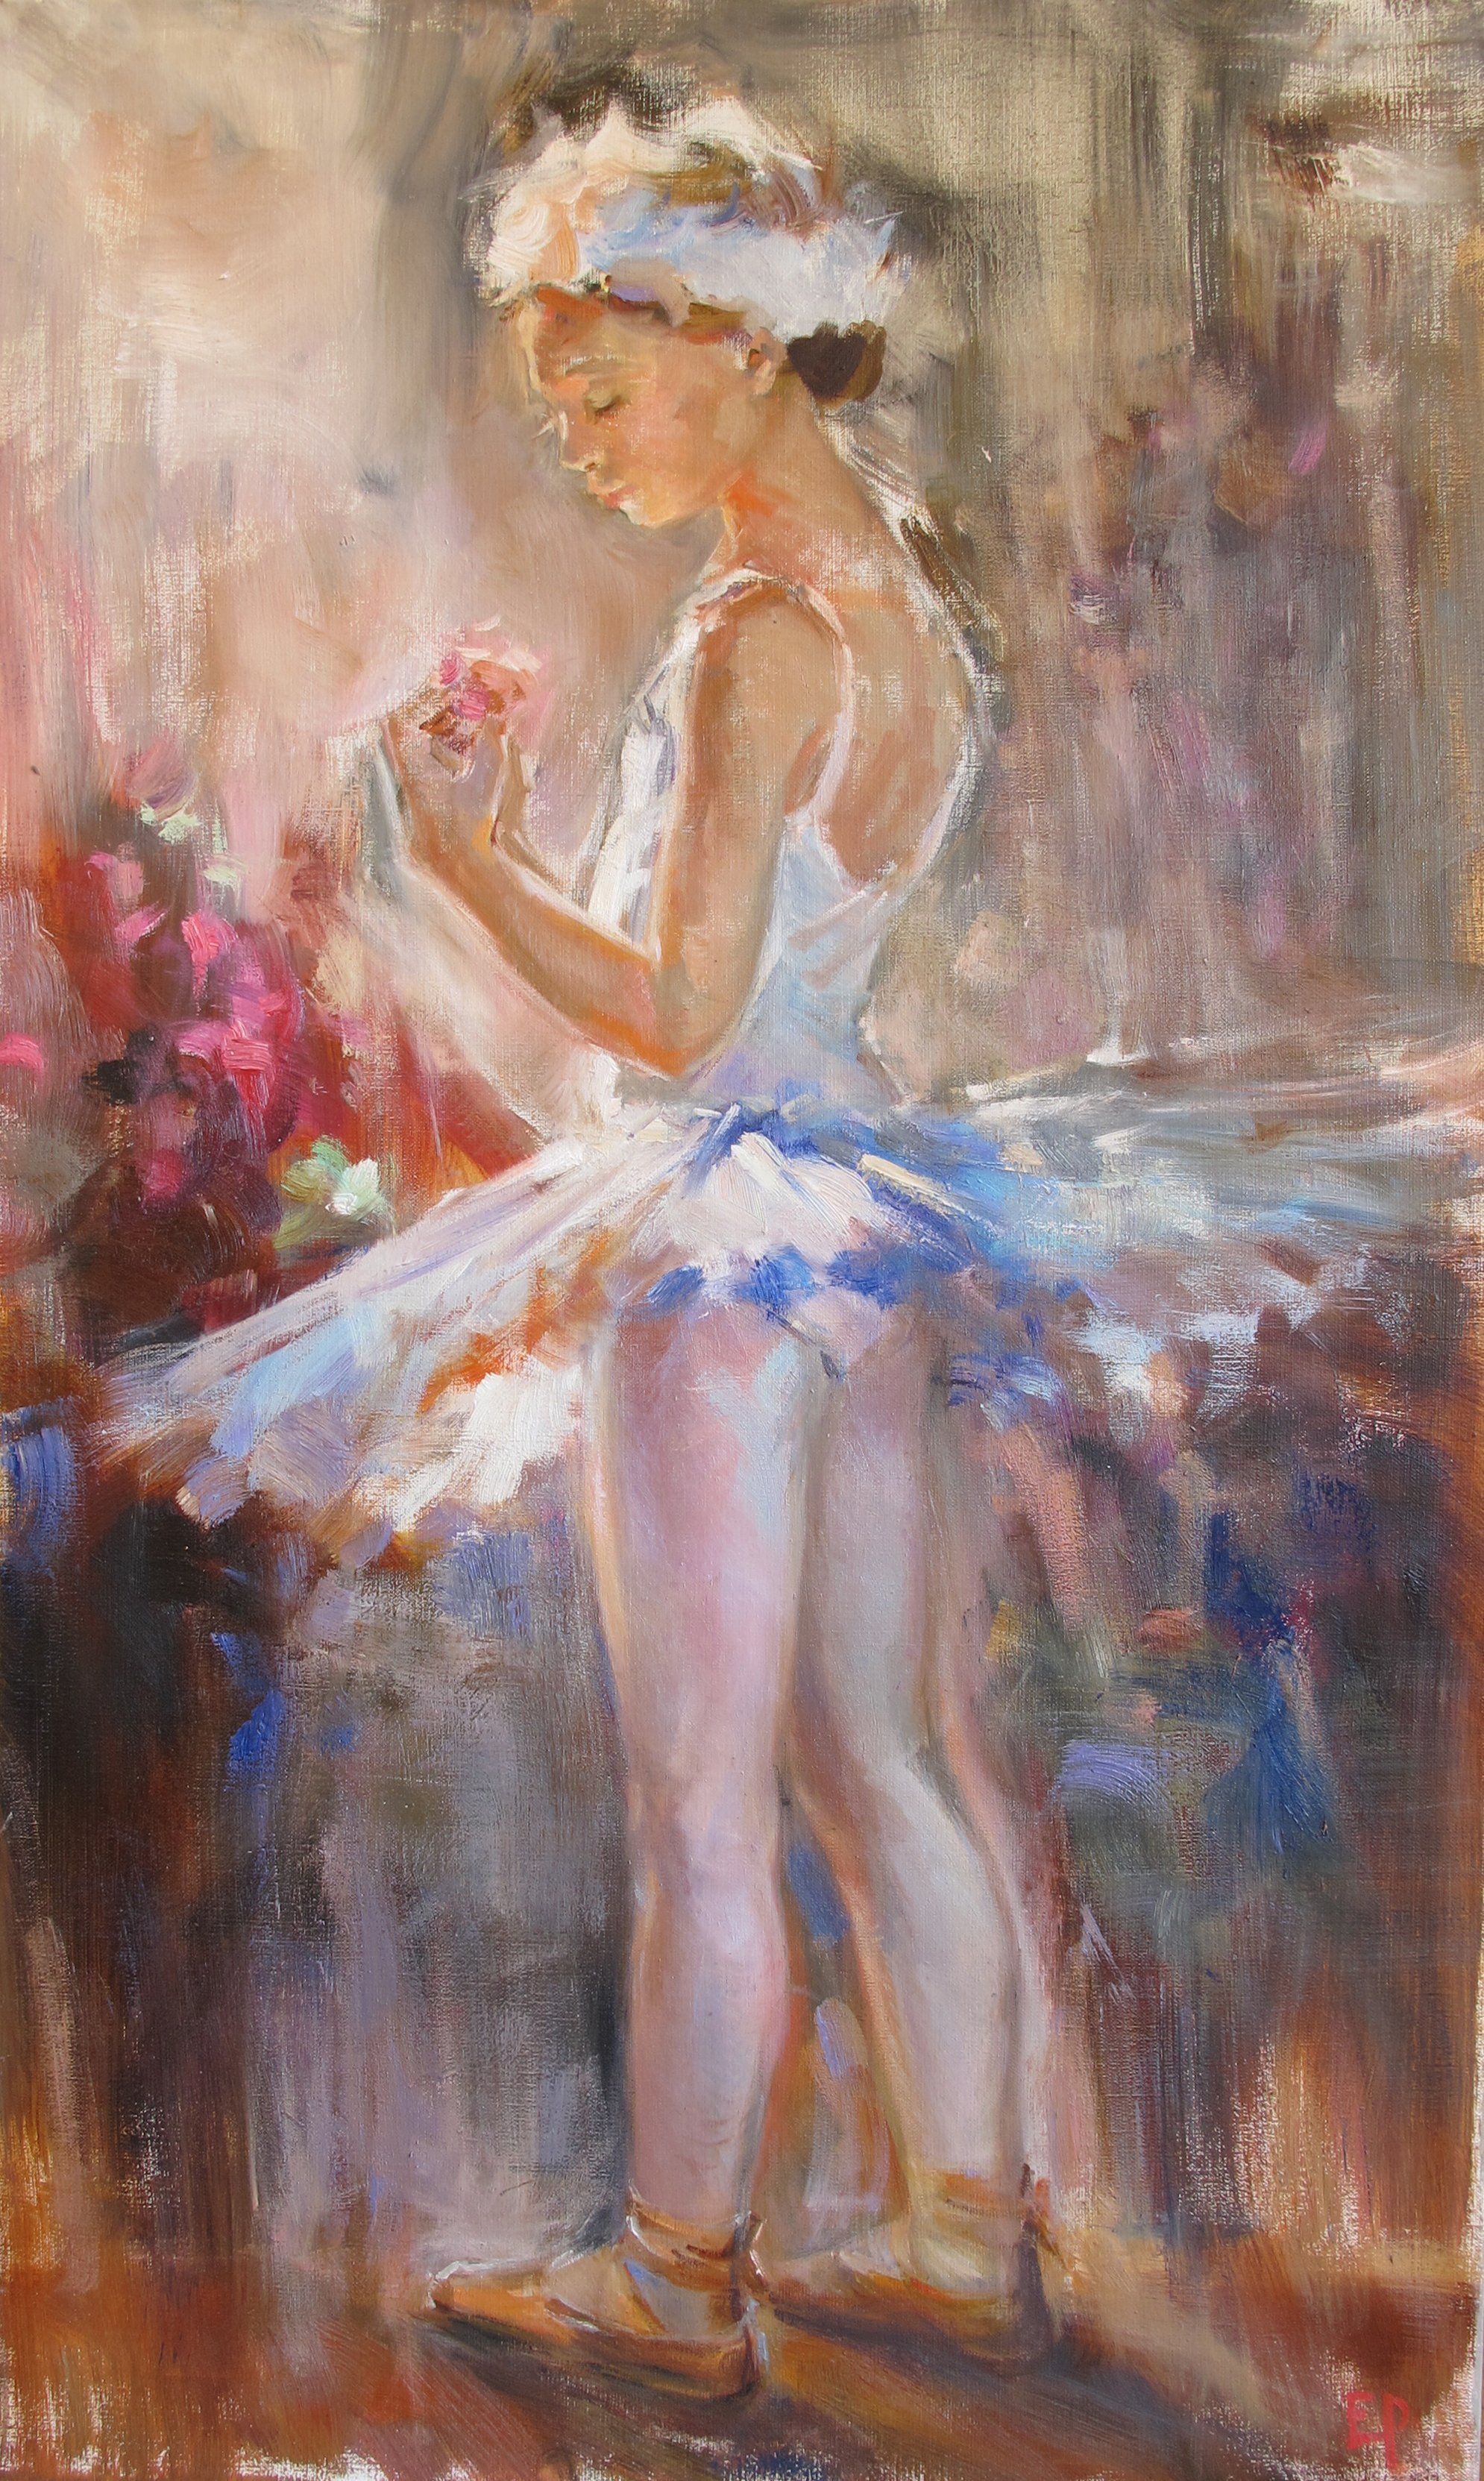 THE YOUNG BALLERINA  oil,  40 x 27.5 in.